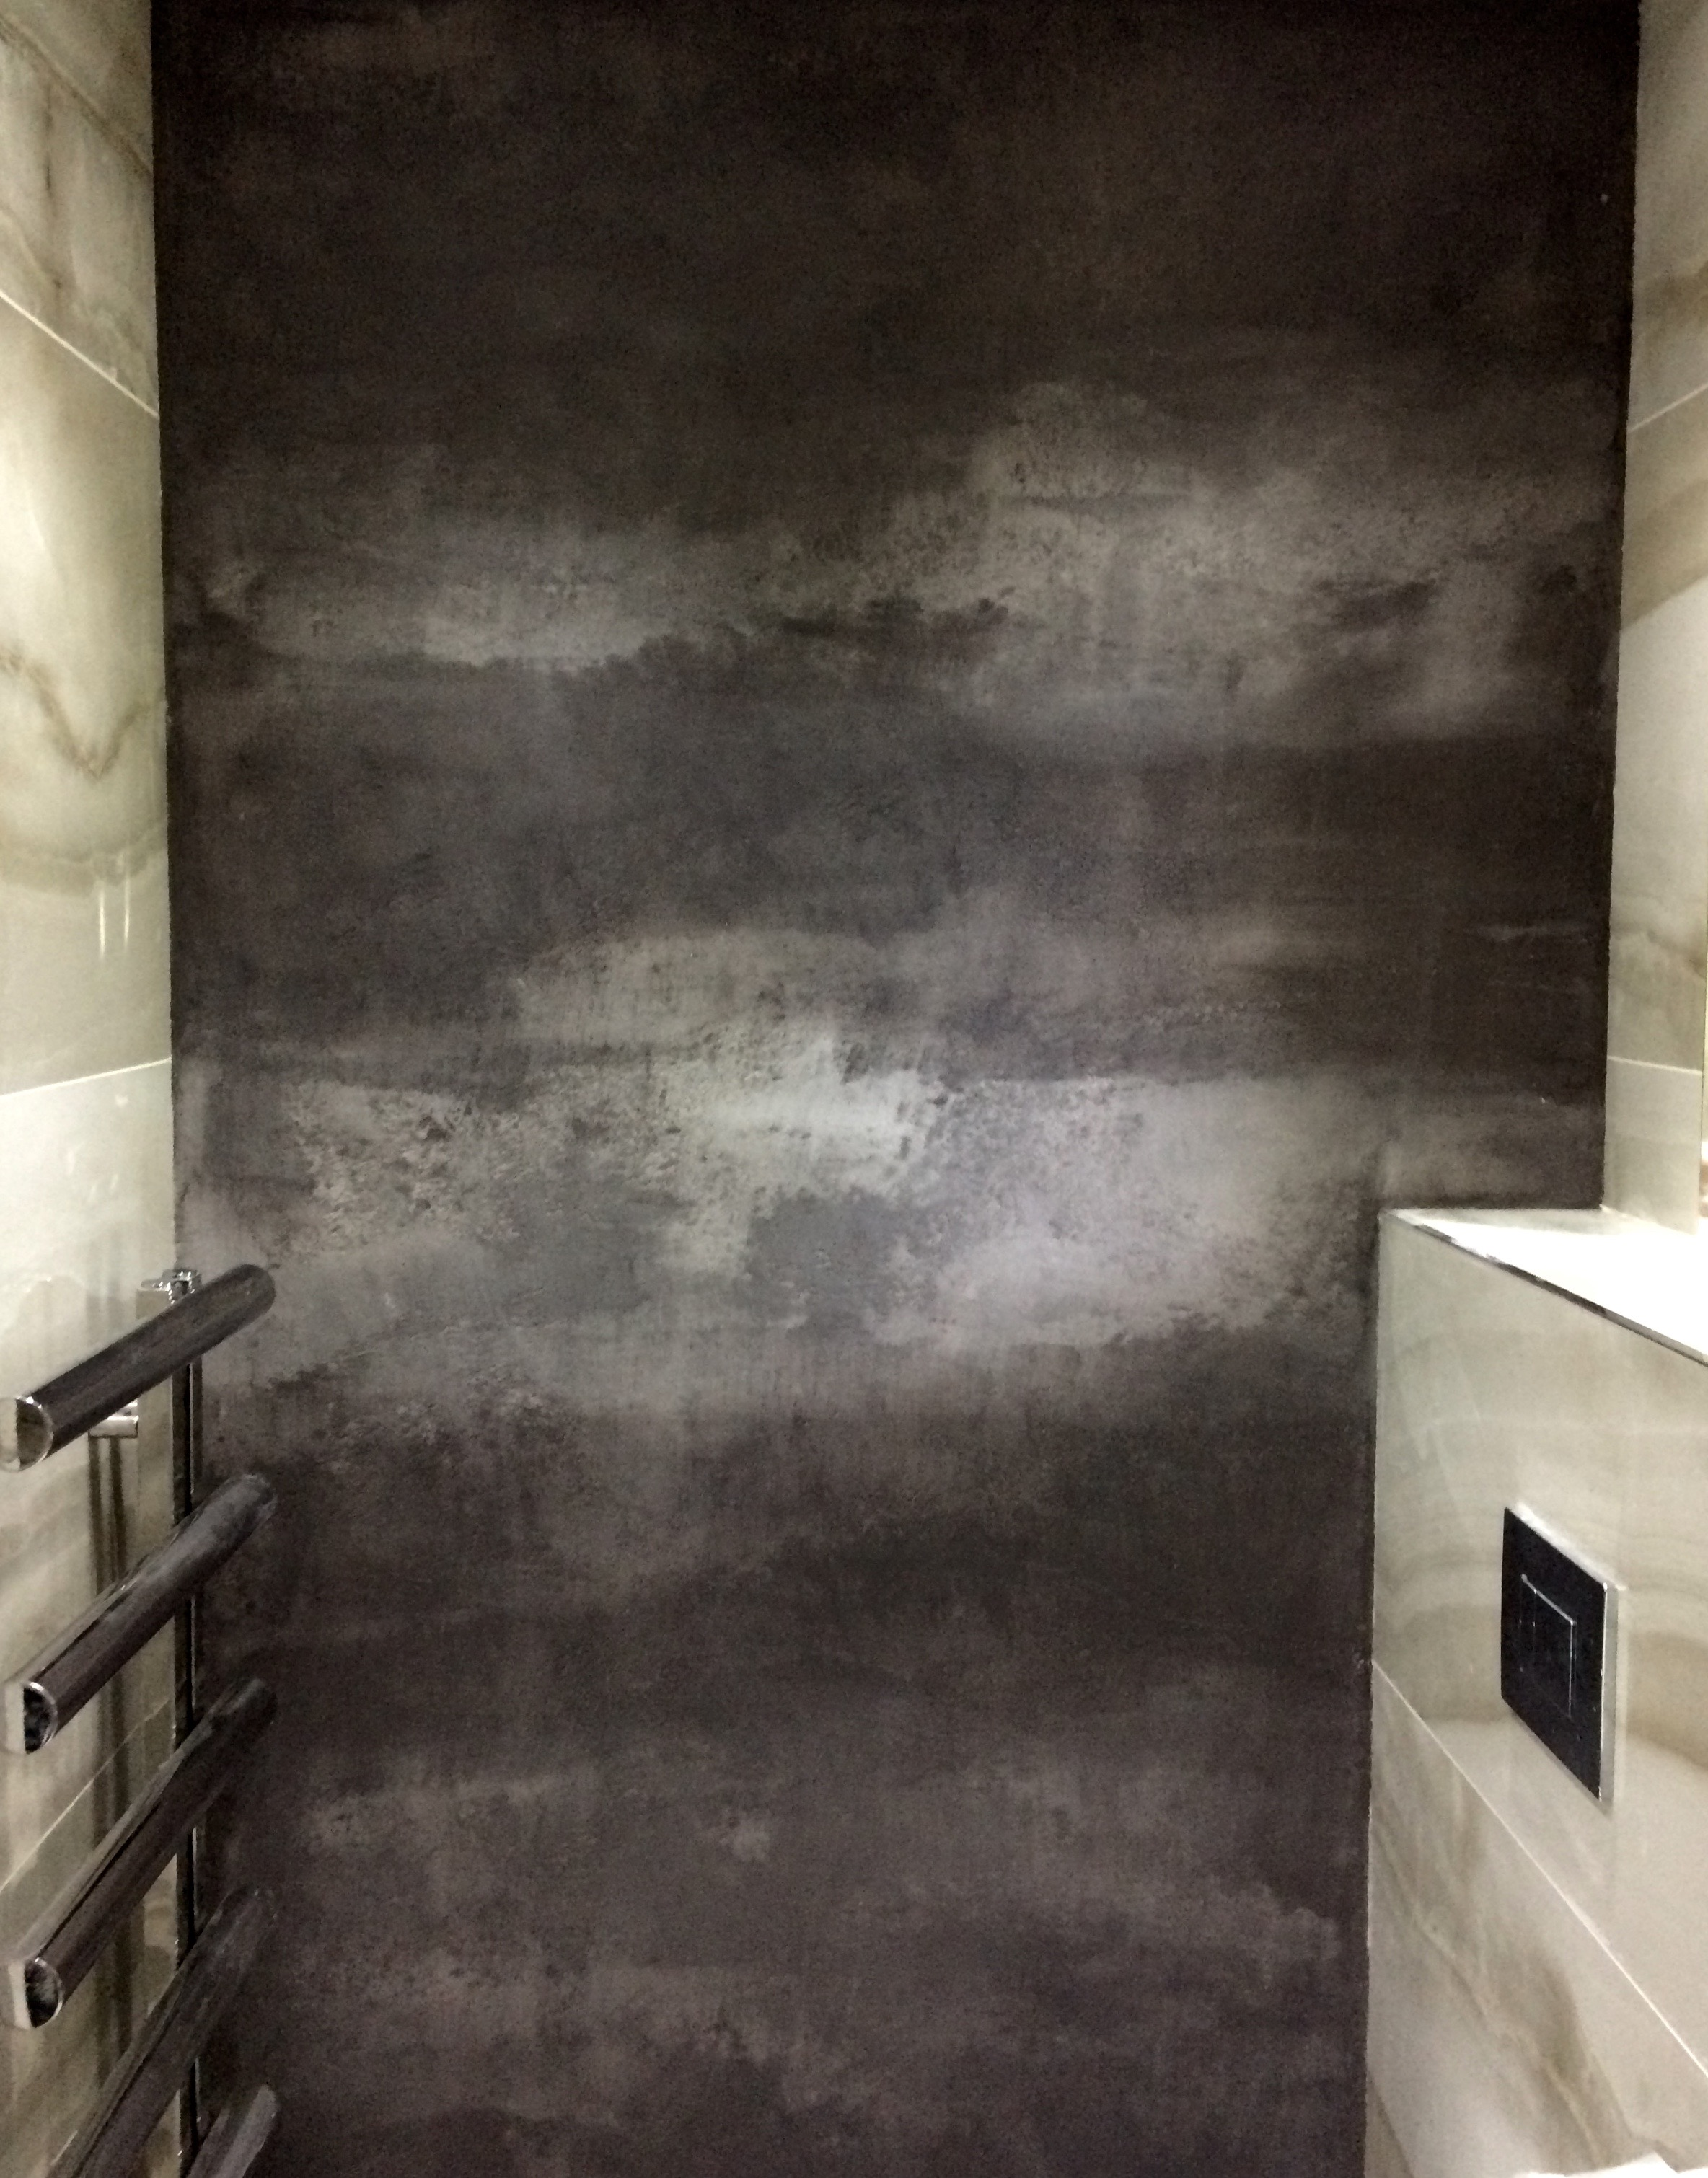 bespoke plaster travertino abstrat water proof bathroom art texture stone wall.jpg